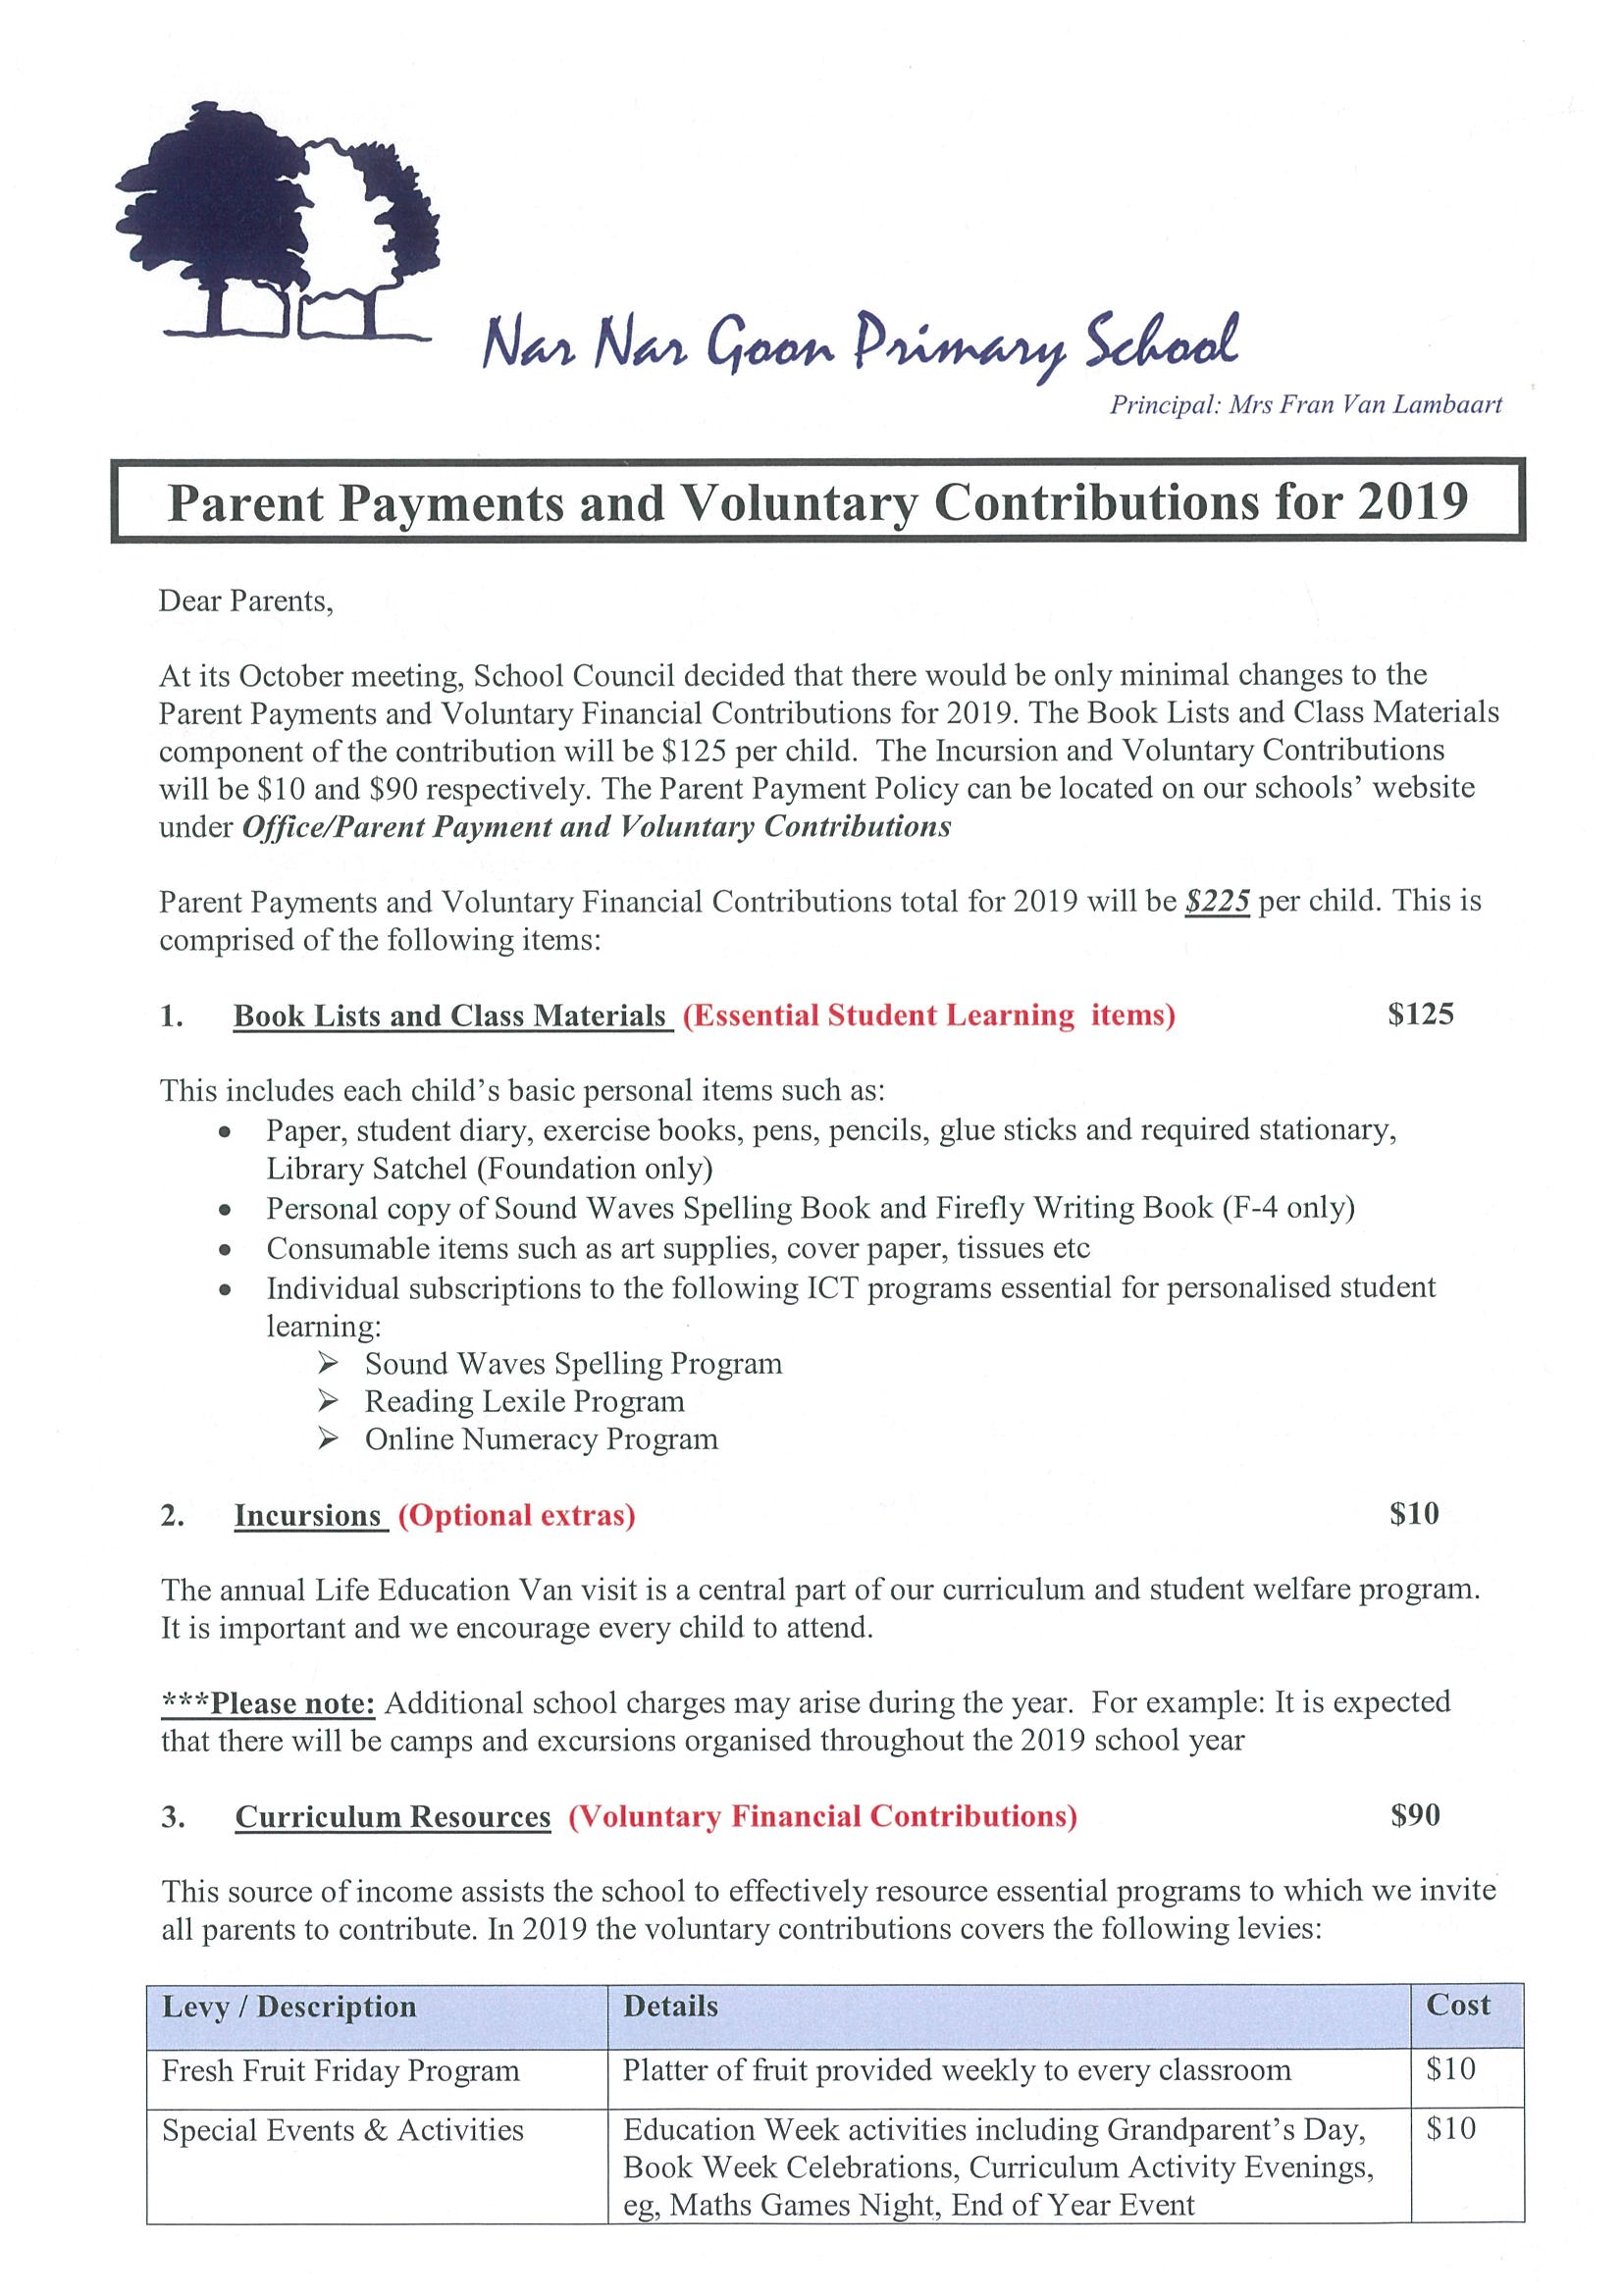 2019 Parent Payment & Voluntary Contributions